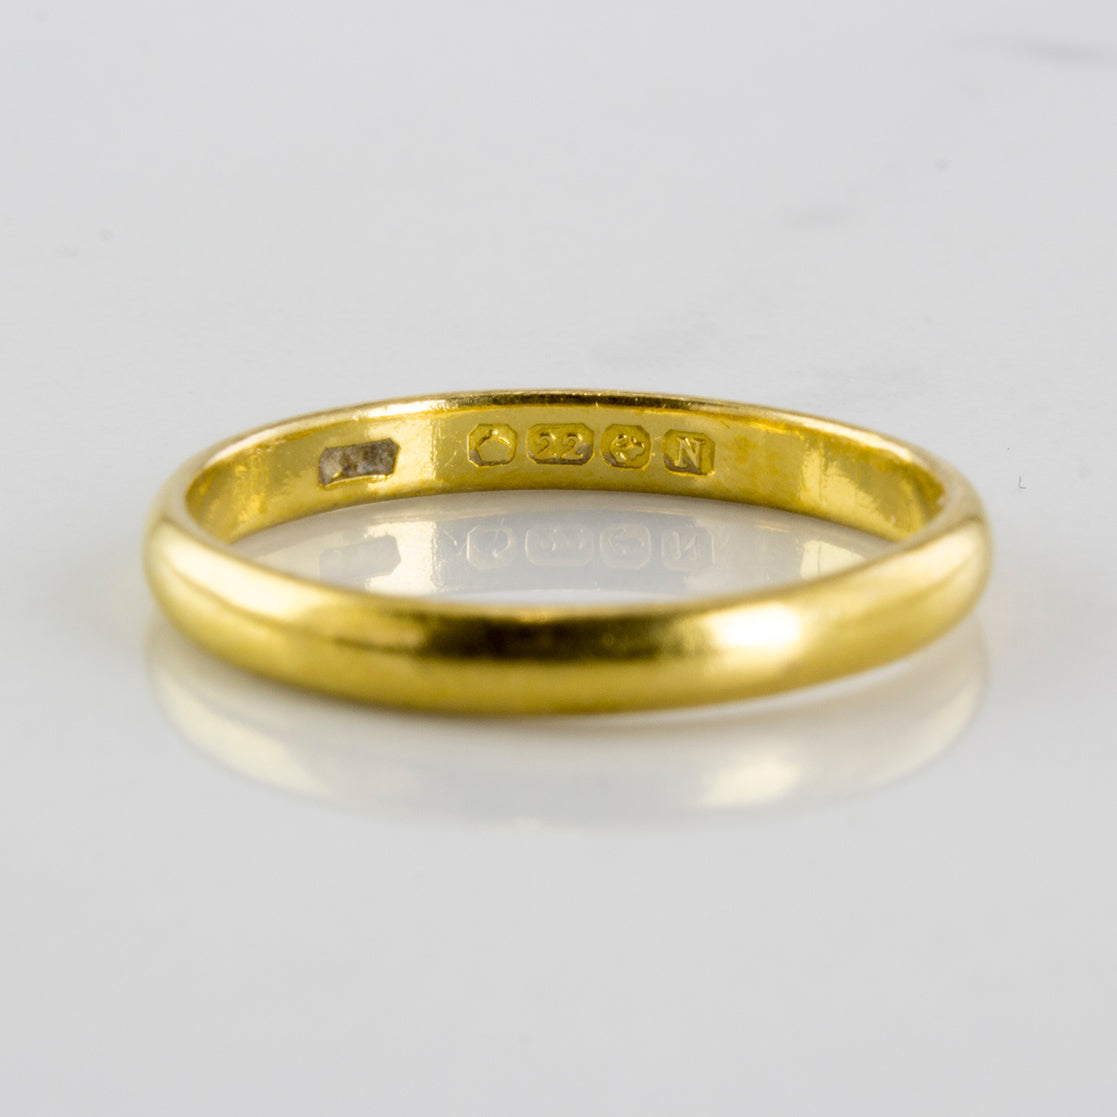 1860s Victorian Wedding Band | SZ 5 |